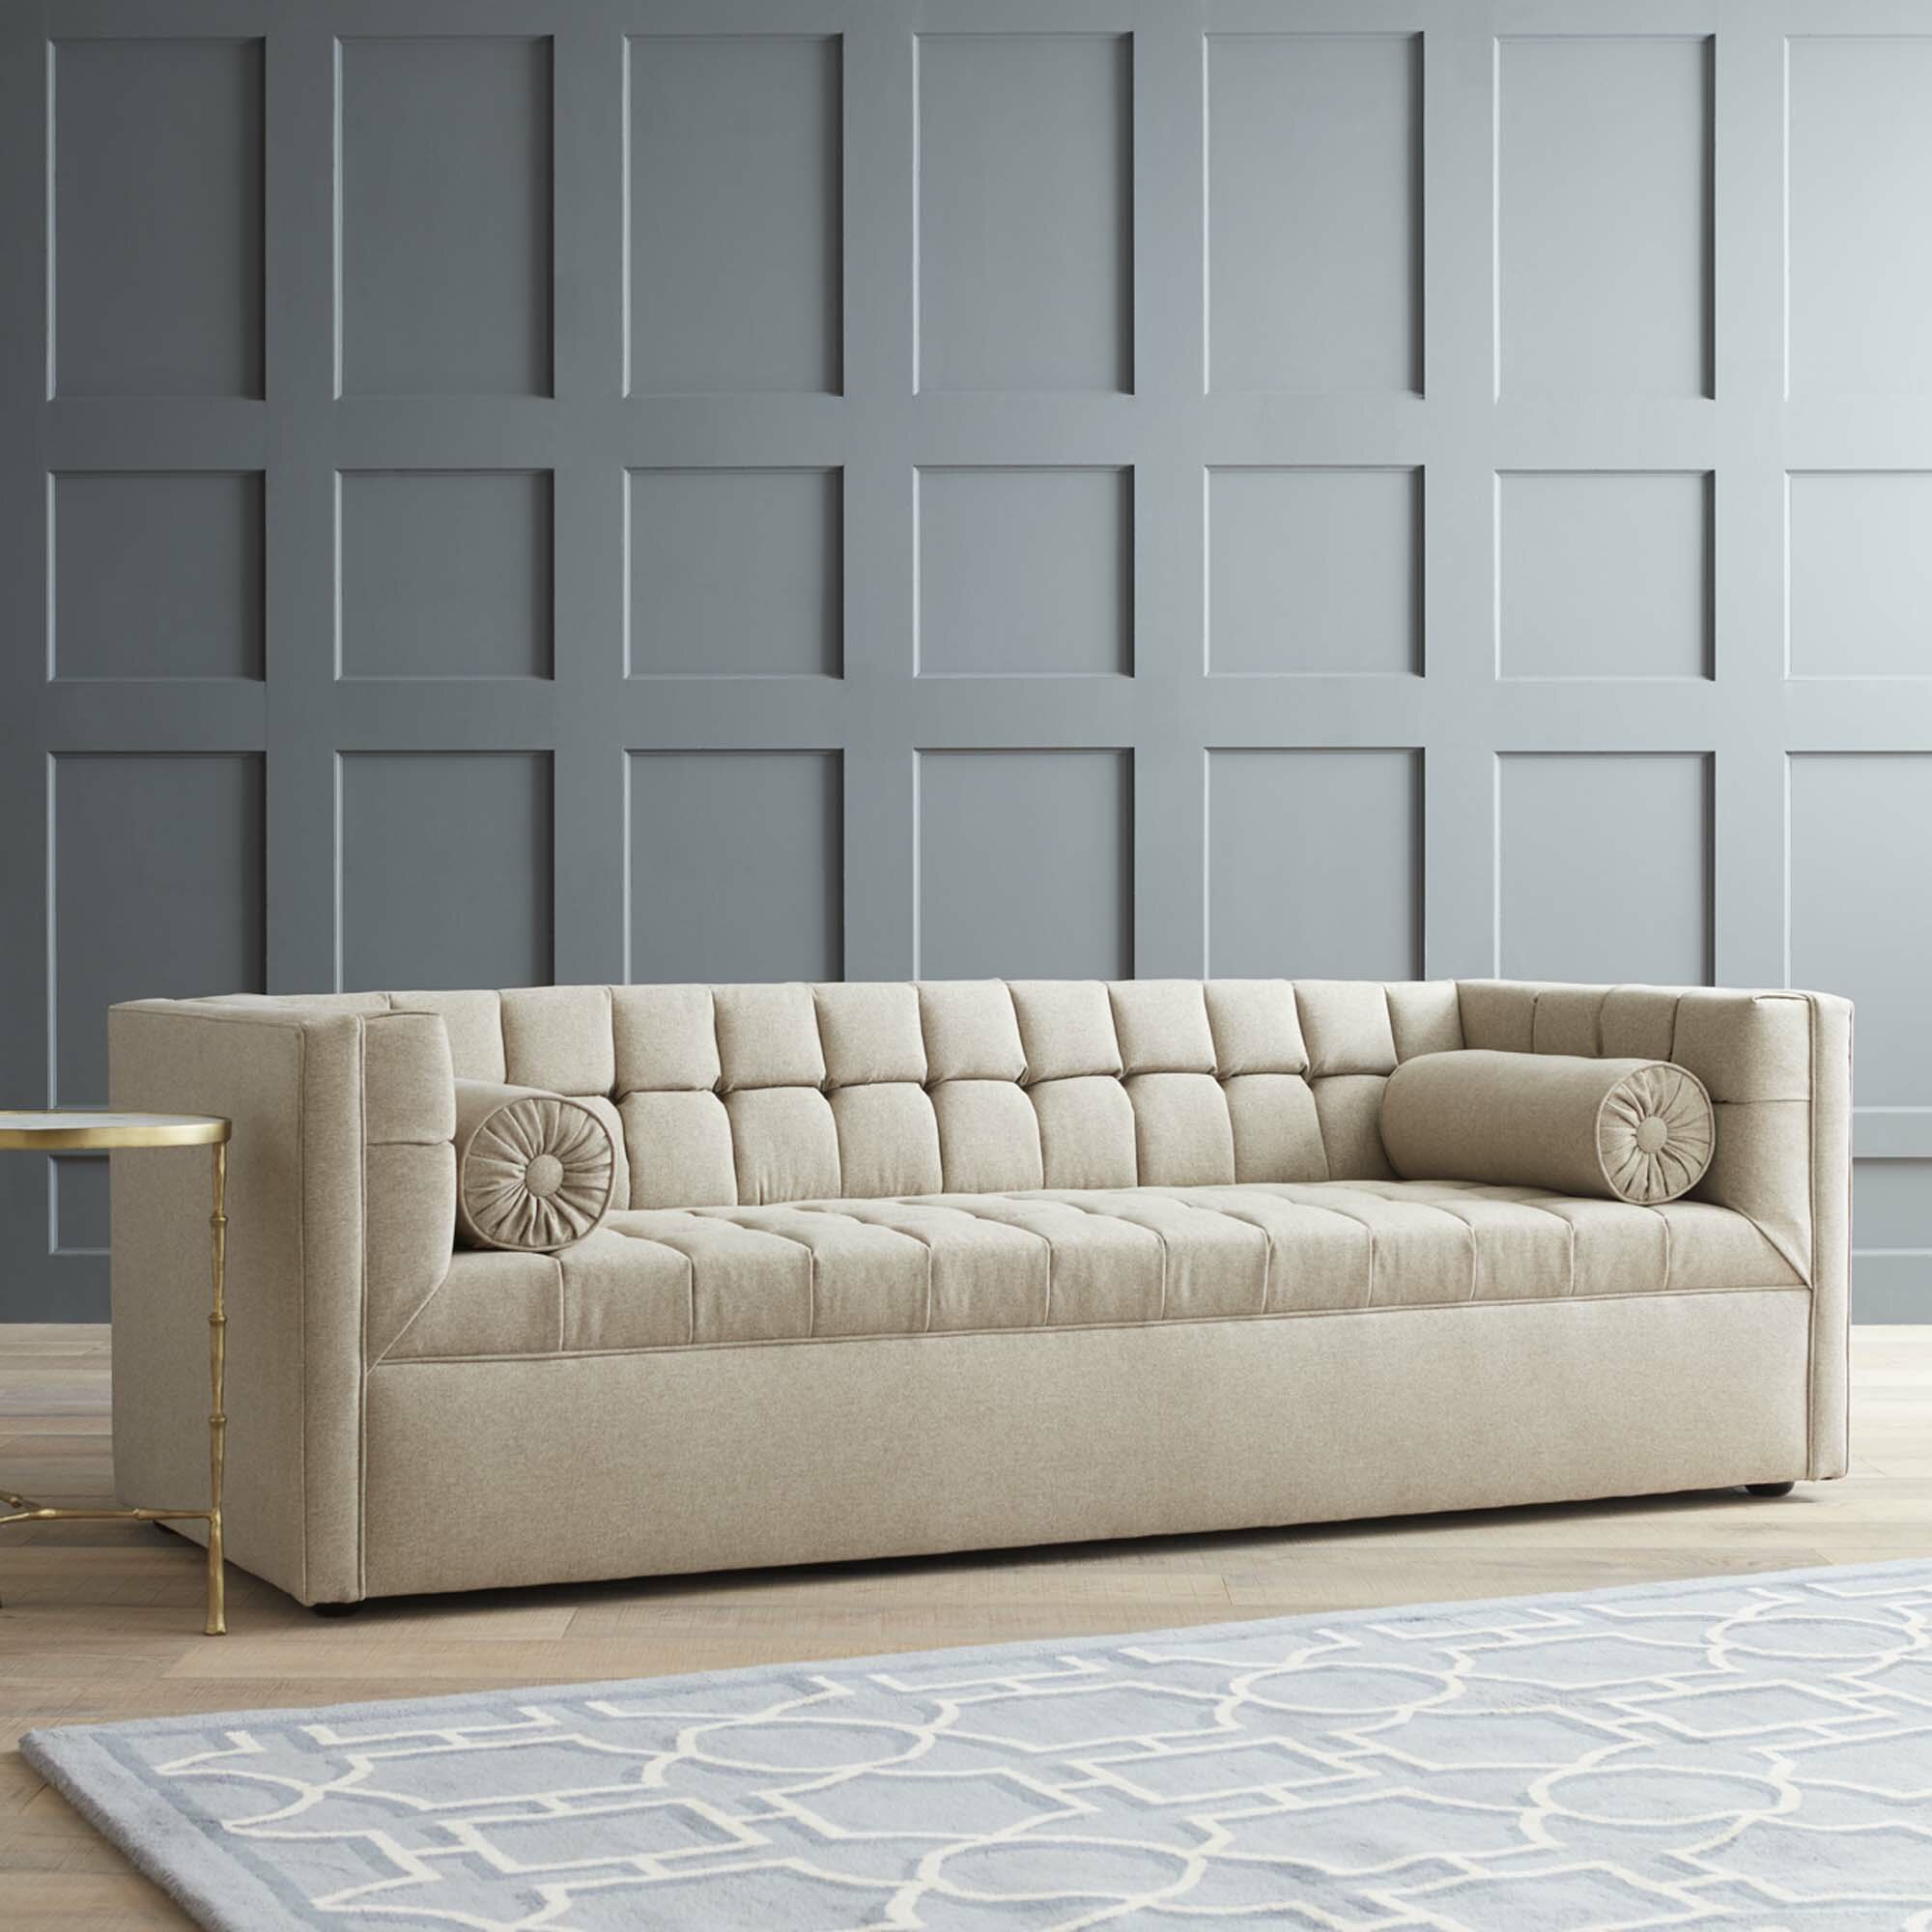 Dwellstudio Langford Sofa Reviews Dwellstudio .